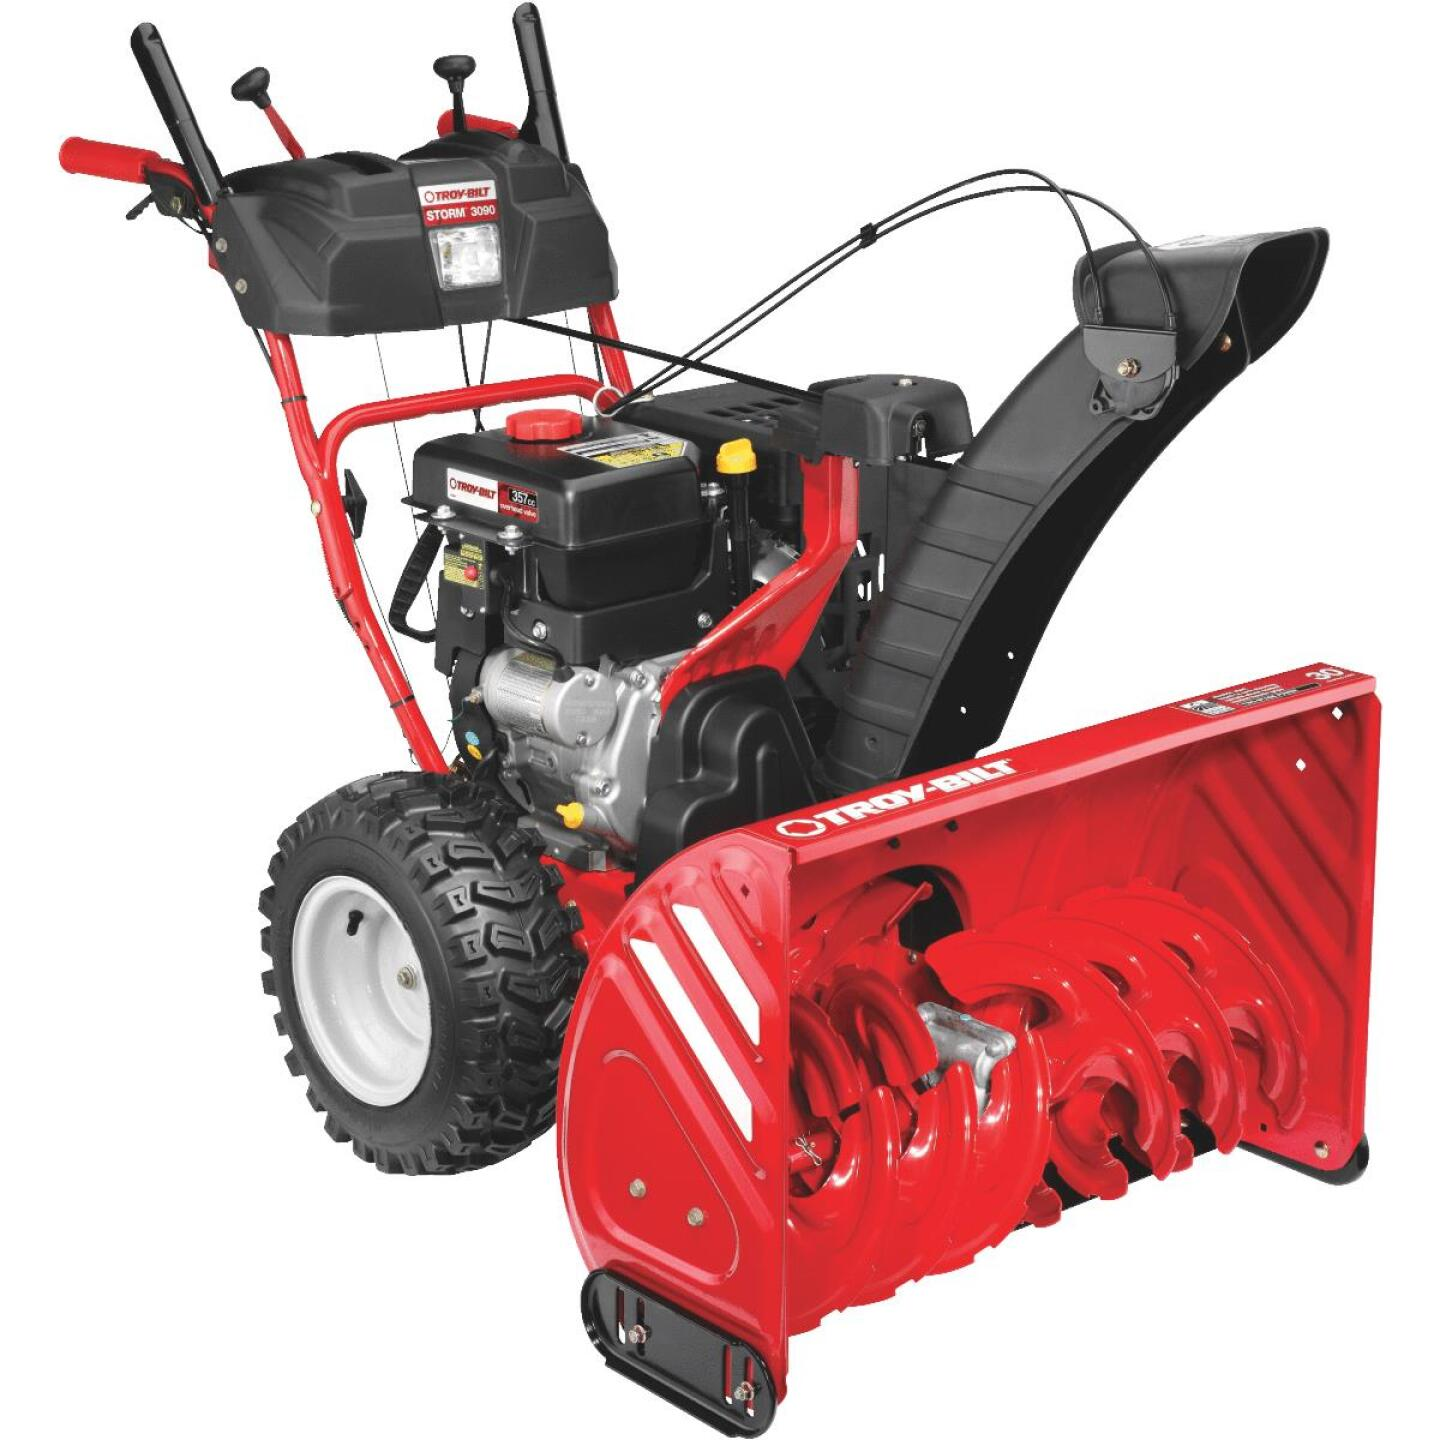 Troy-Bilt 30 In. 357cc 2-Stage 4-Cycle Gas Snow Blower Image 1